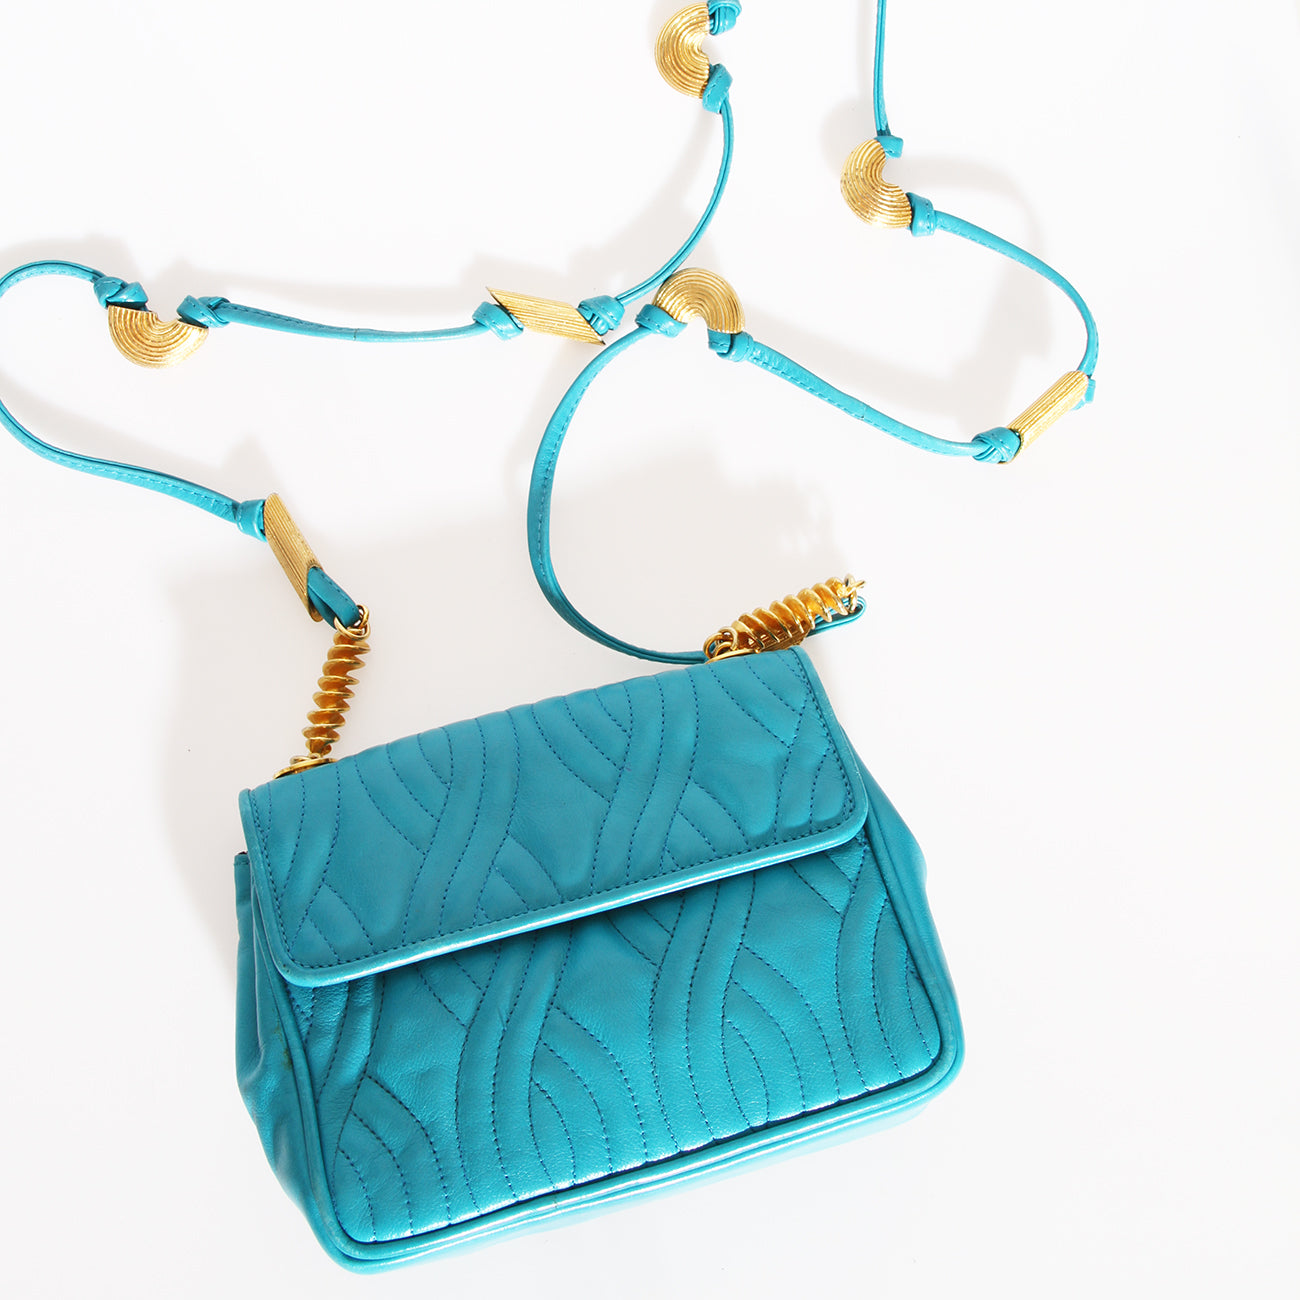 Fendi Turquoise Quilted Leather Handbag